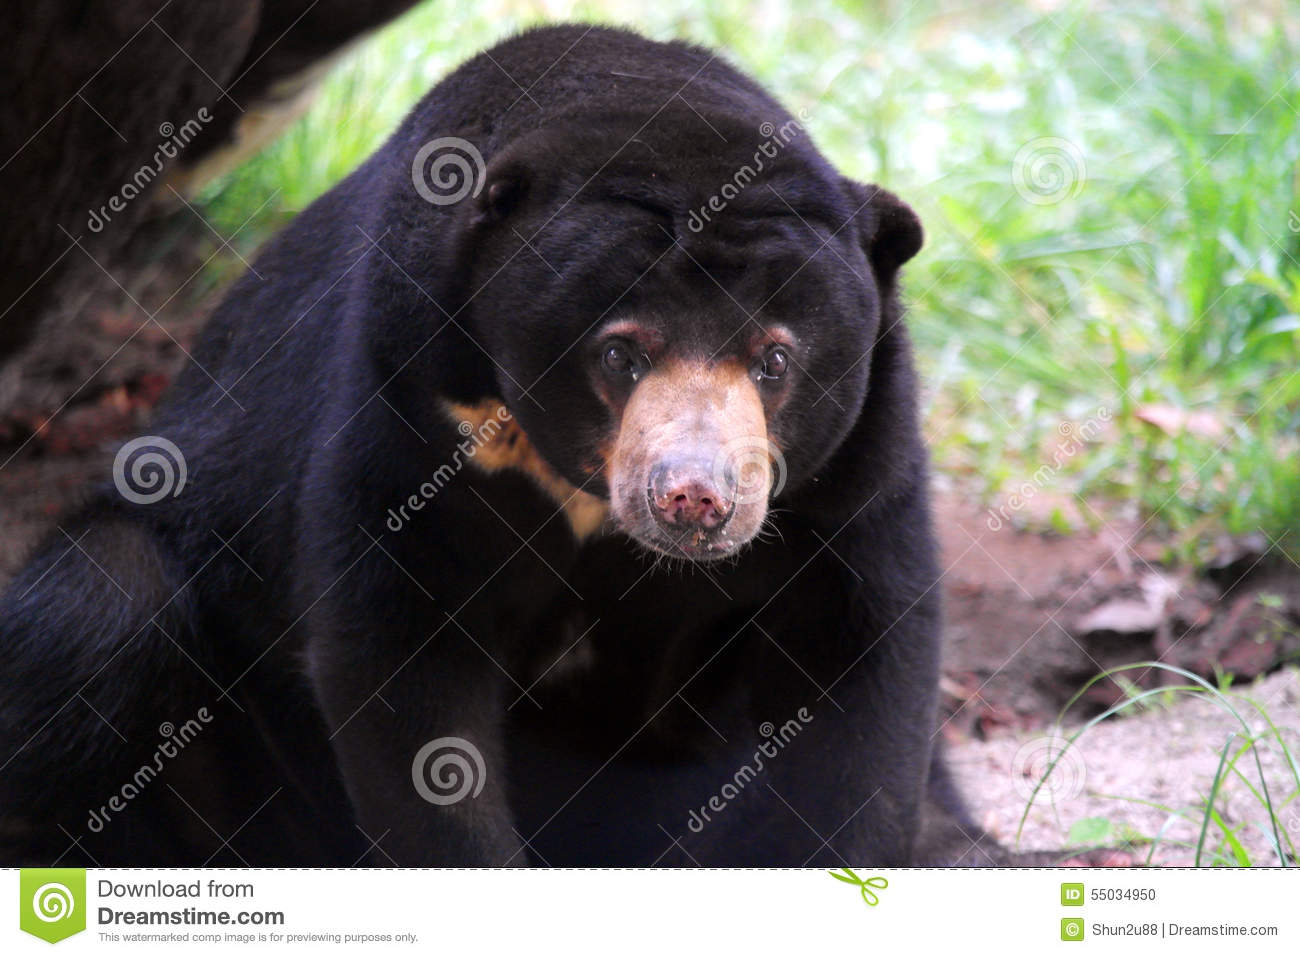 Black bear head profile - photo#19